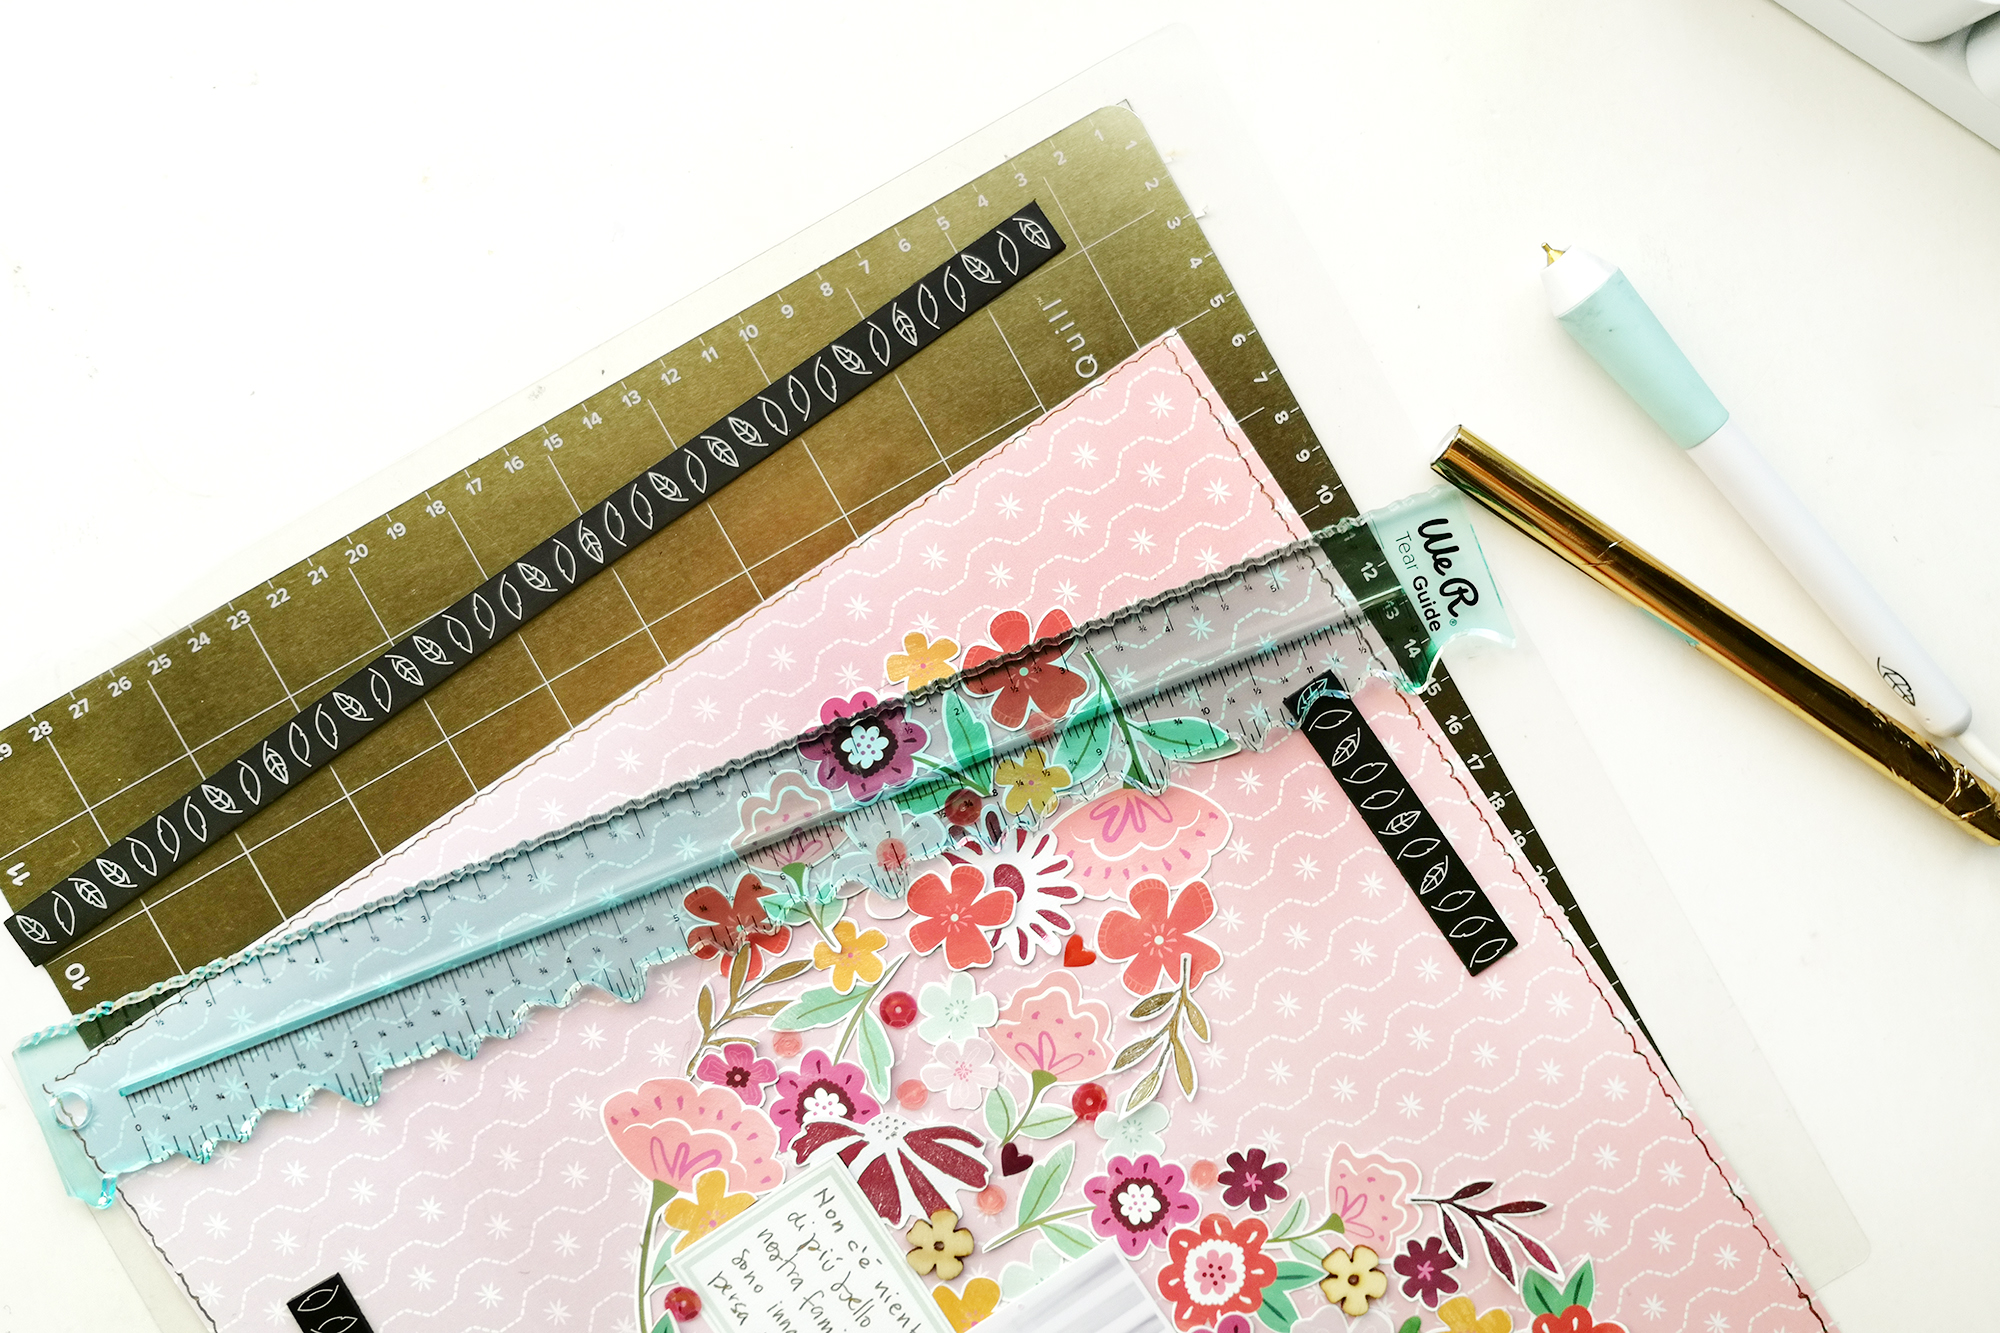 Free-Style-Foil-Quill-Layout-By-Eva-Pizarro-3